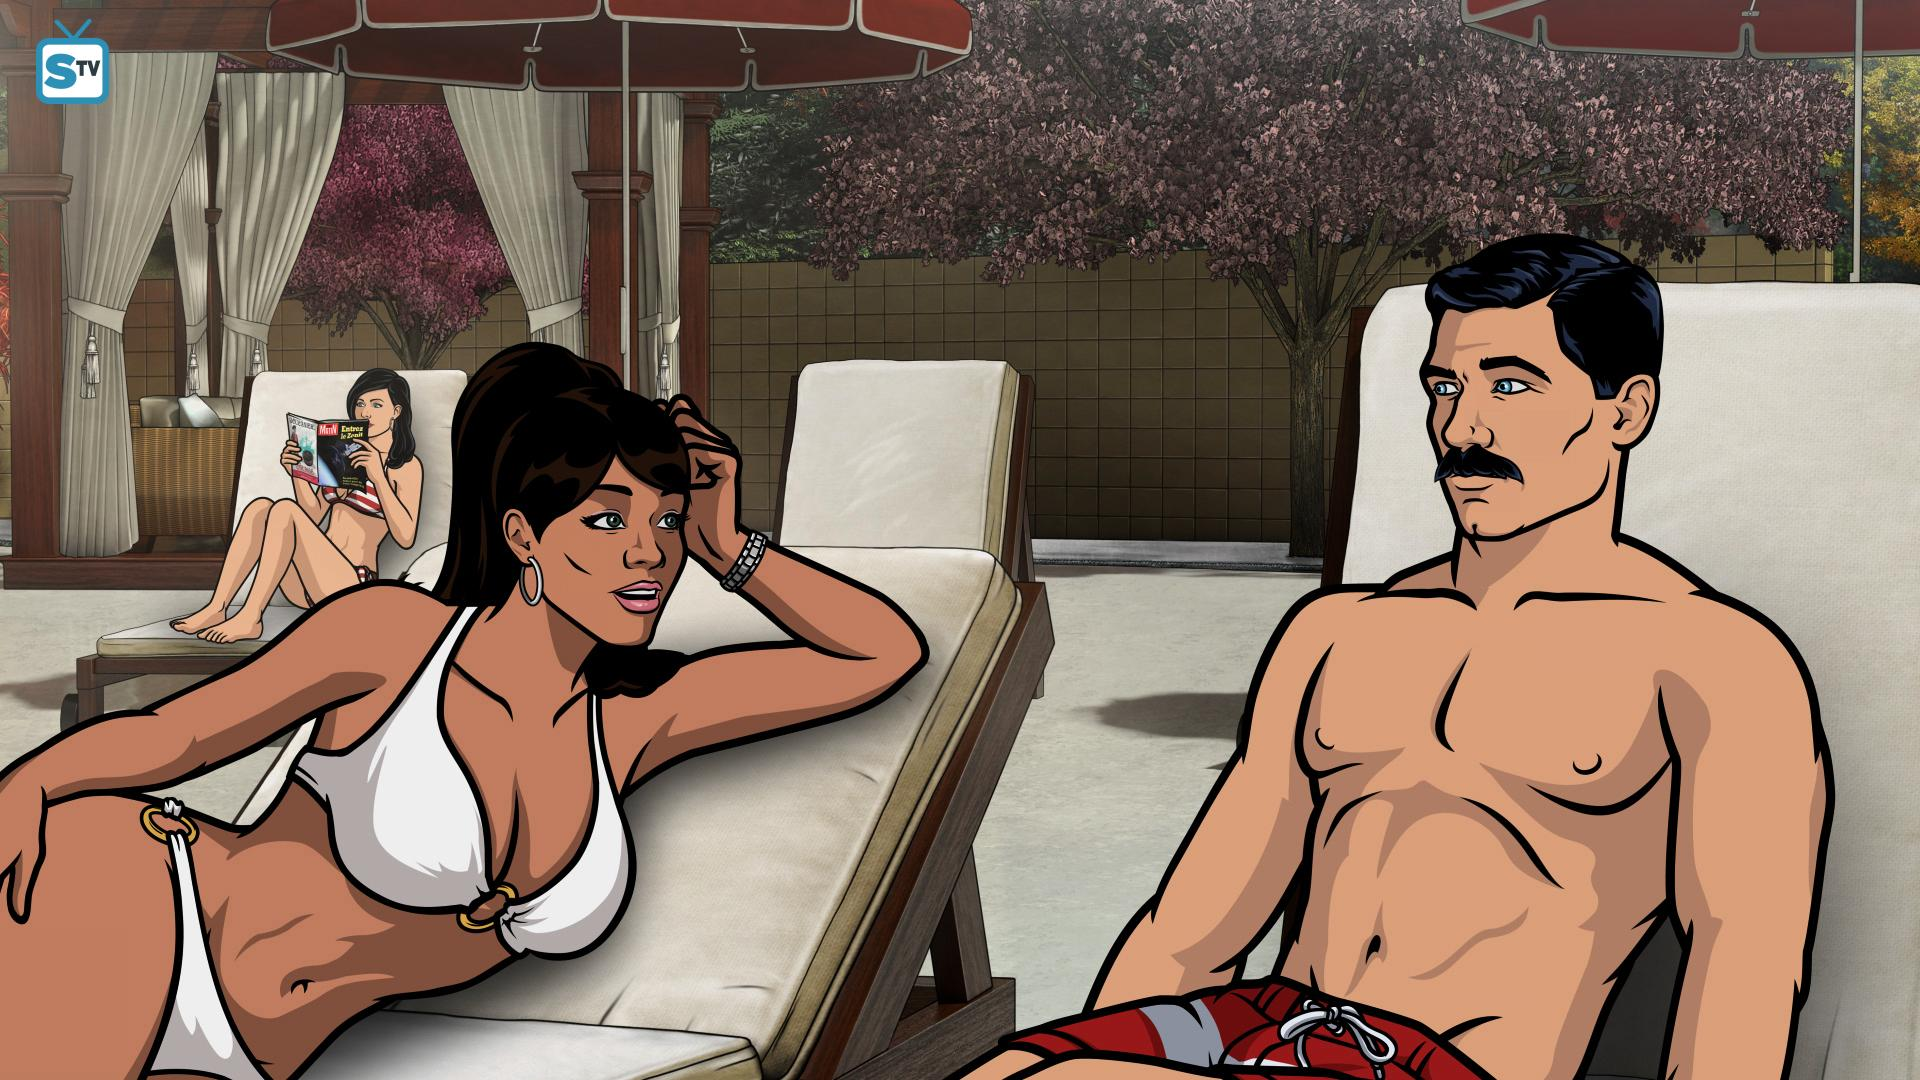 Archer having sex with lana porn hoe